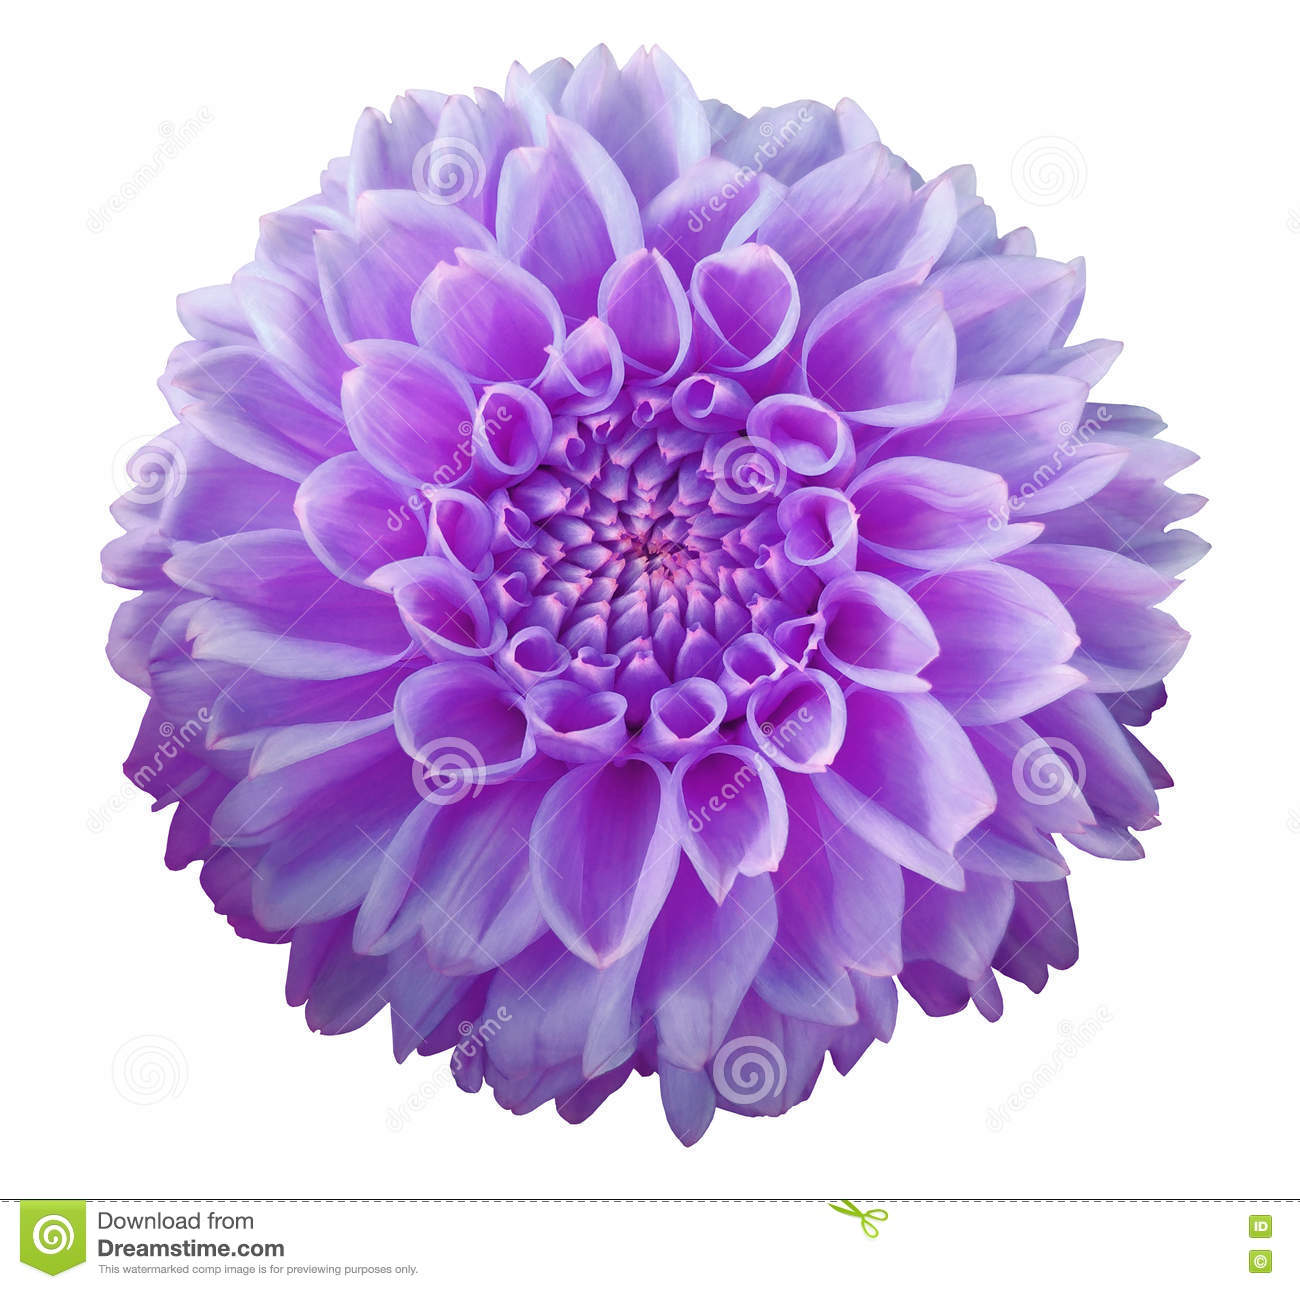 Purple Flower Clipart No Background: Purple Dahlia Flower, White Background Isolated With